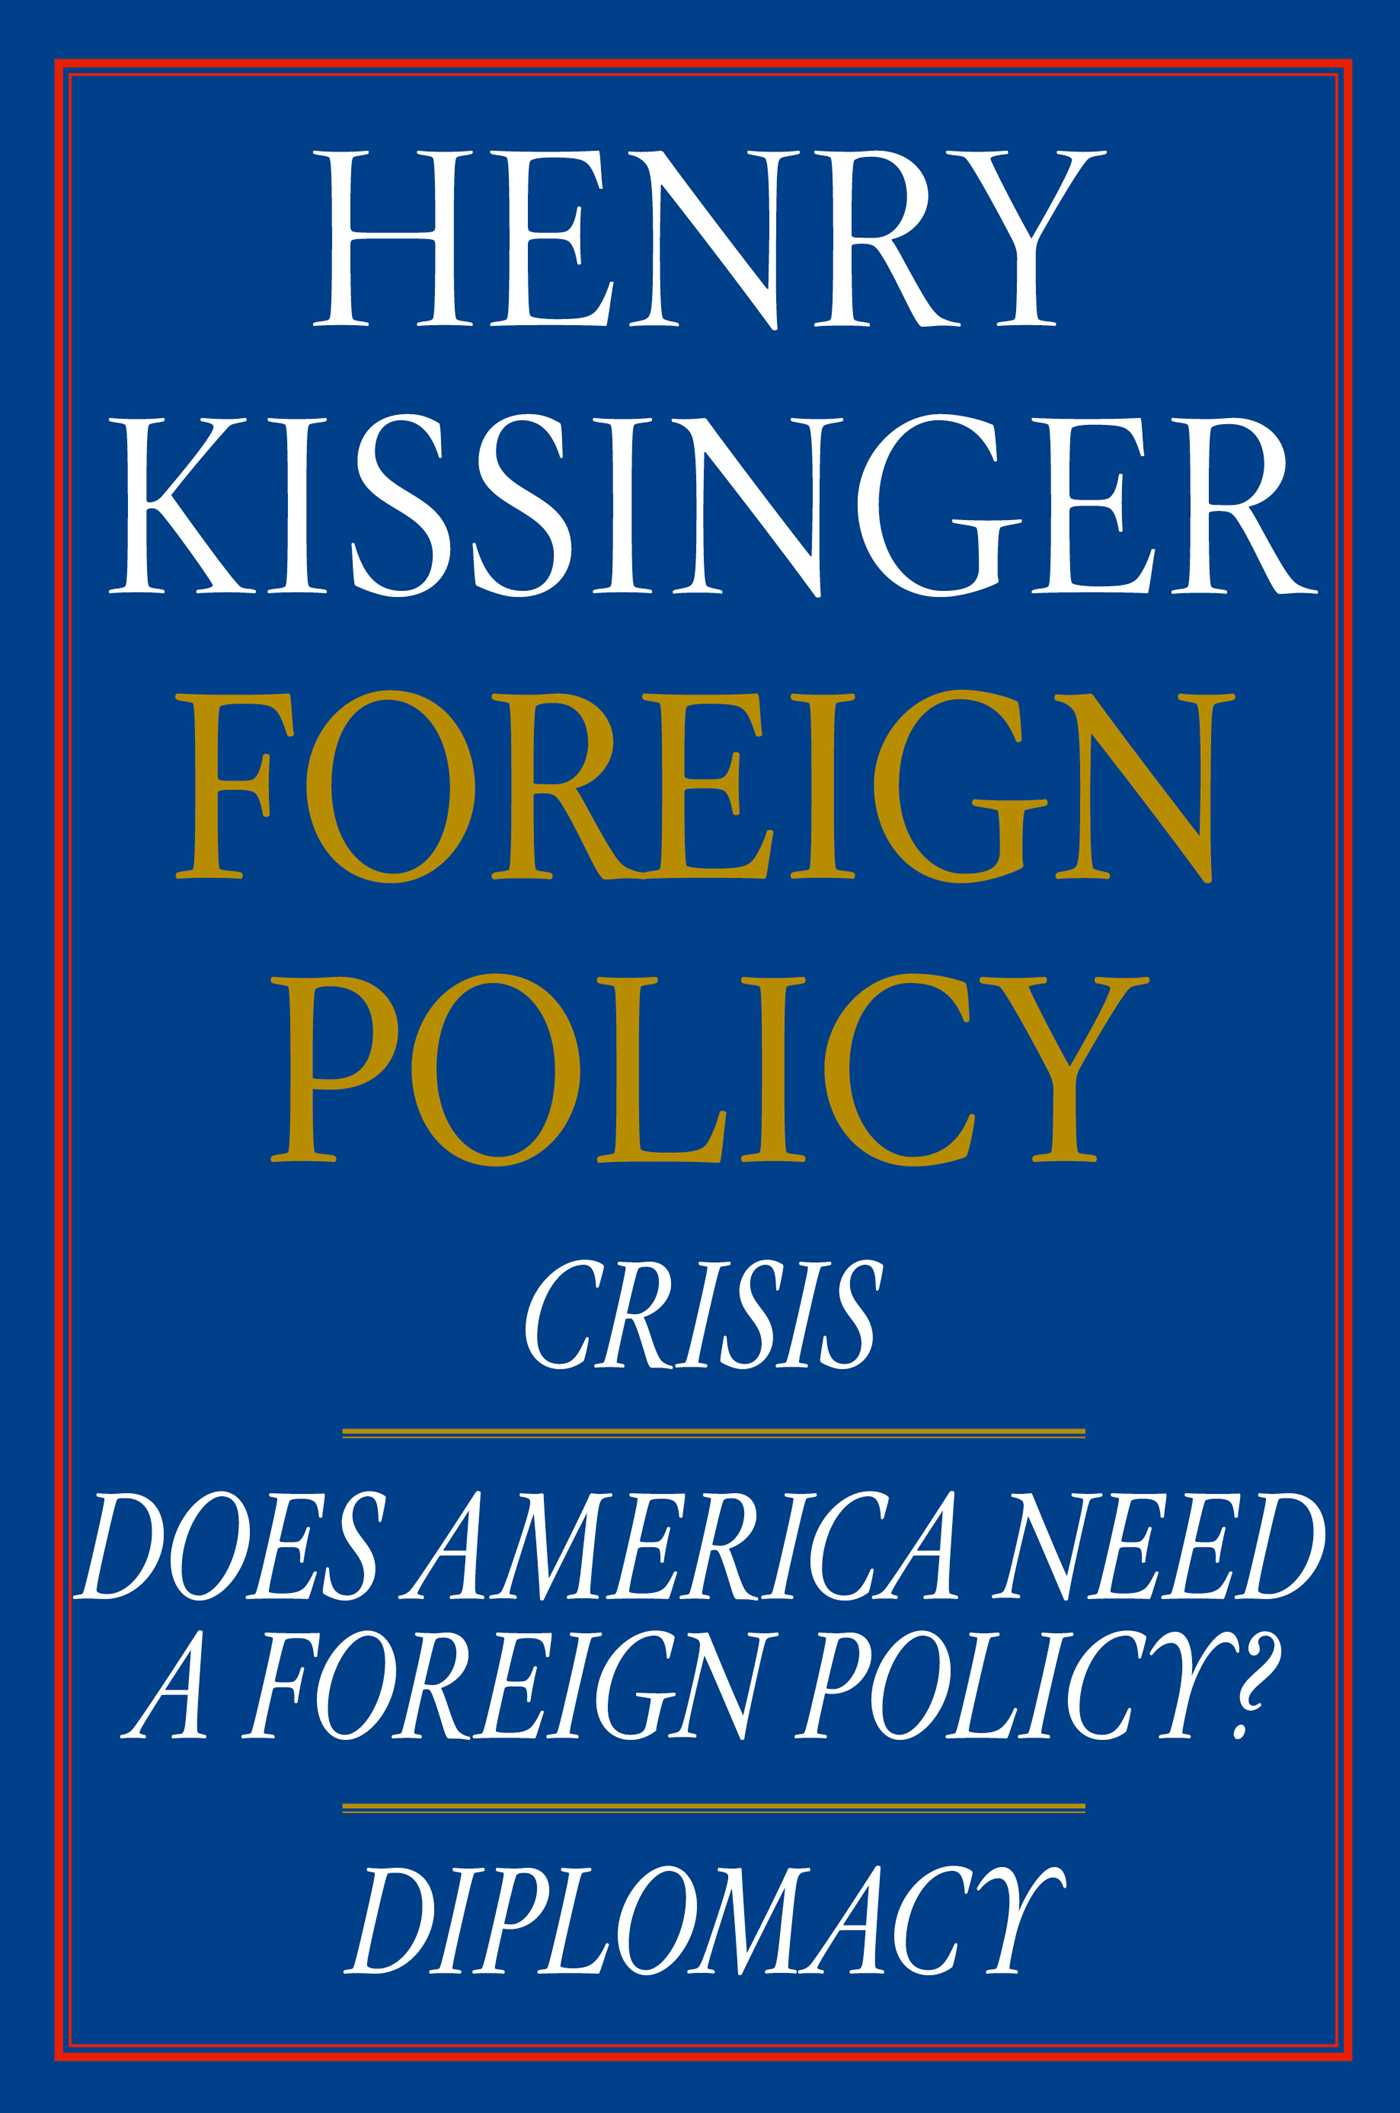 Henry kissinger foreign policy e book boxed set 9781476760797 hr